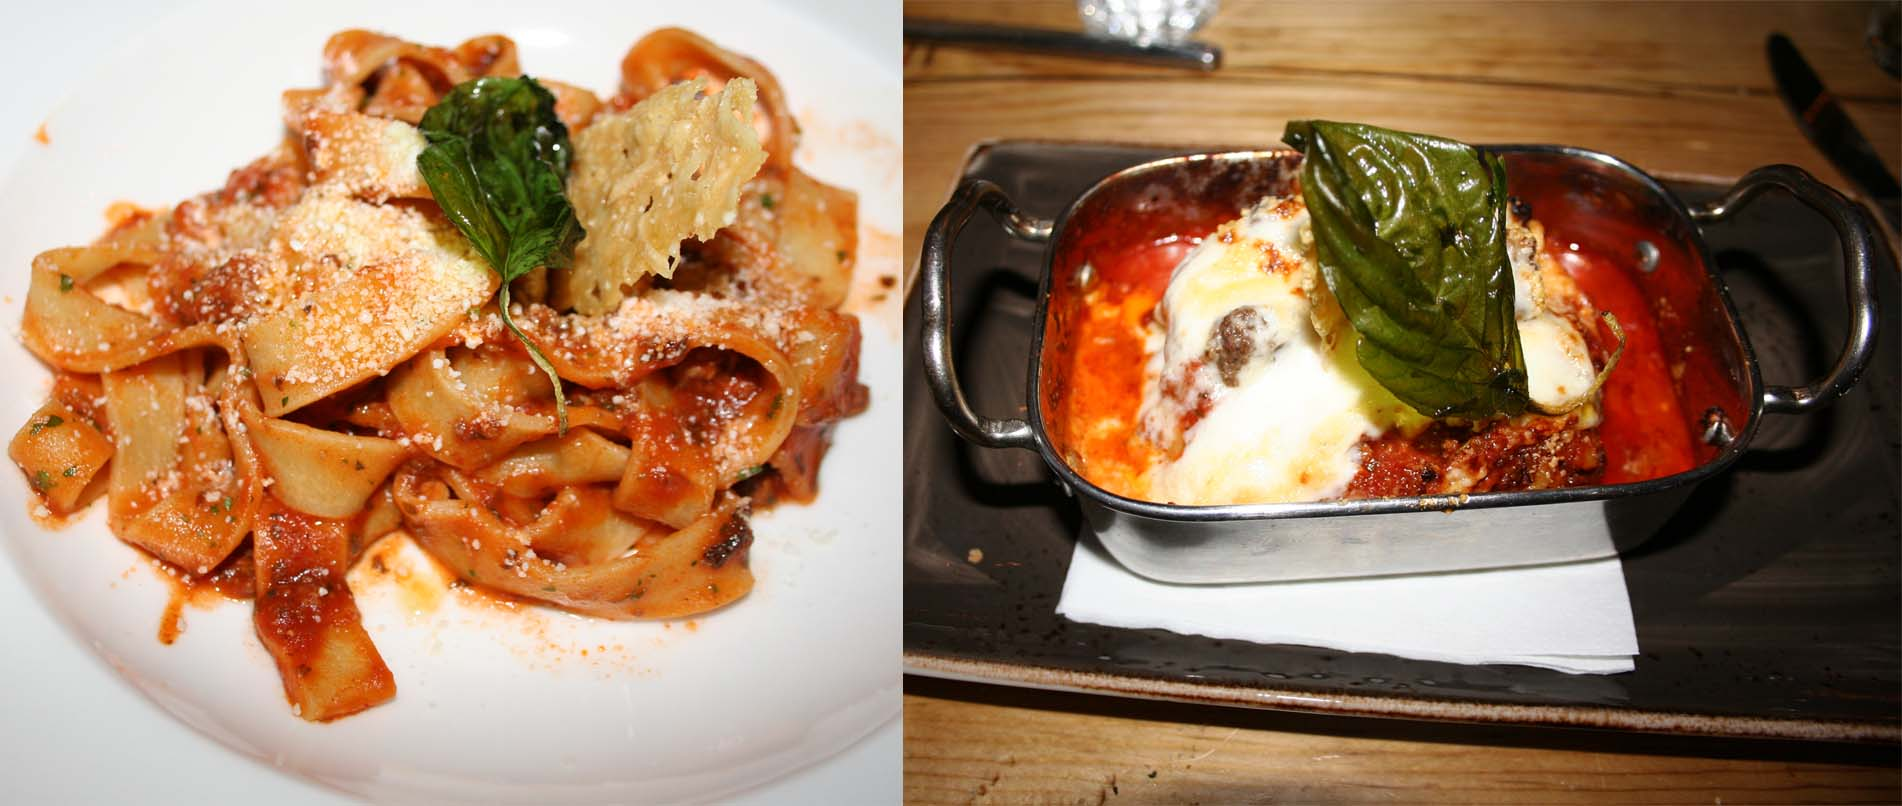 House-made pastas include pappardelle with a lamb ragu (left) and lasagna. (Photos: Mark Heckathorn/DC on Heels)